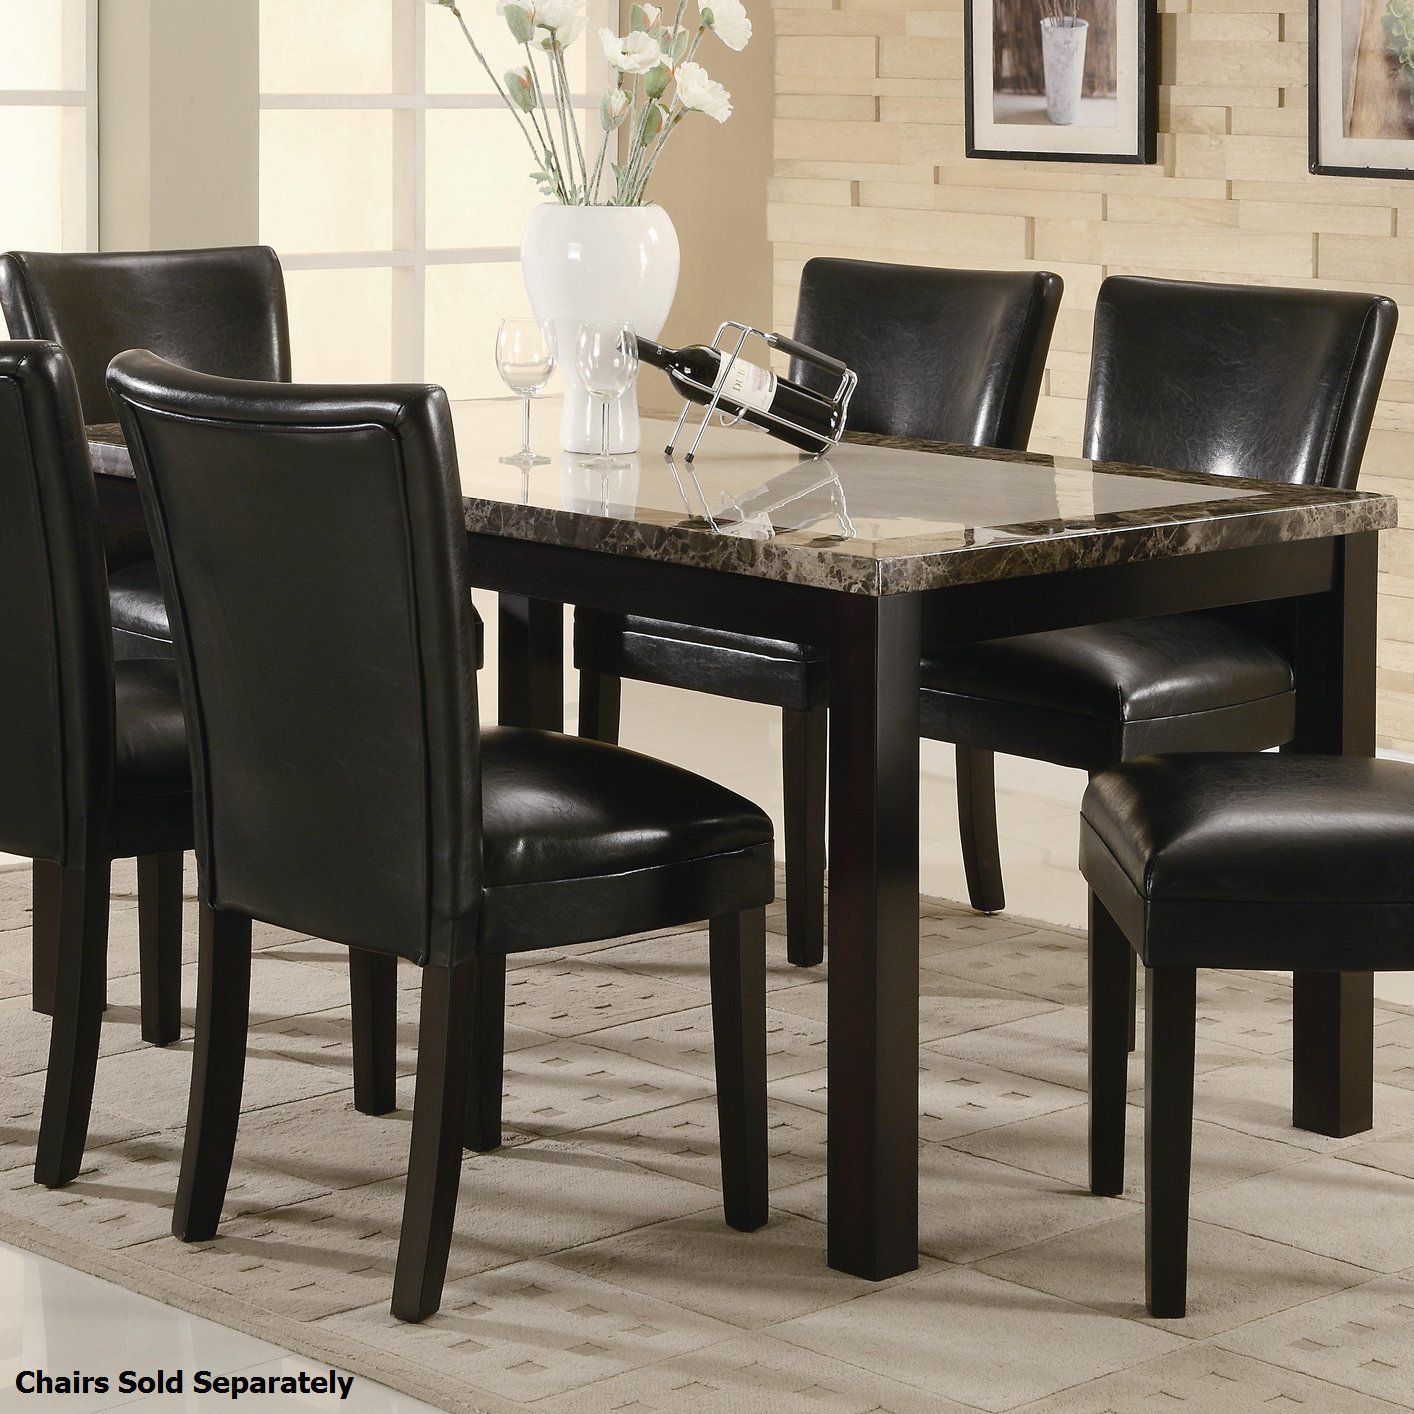 Black dining table and chairs - Brown Marble Dining Table And Chair Set